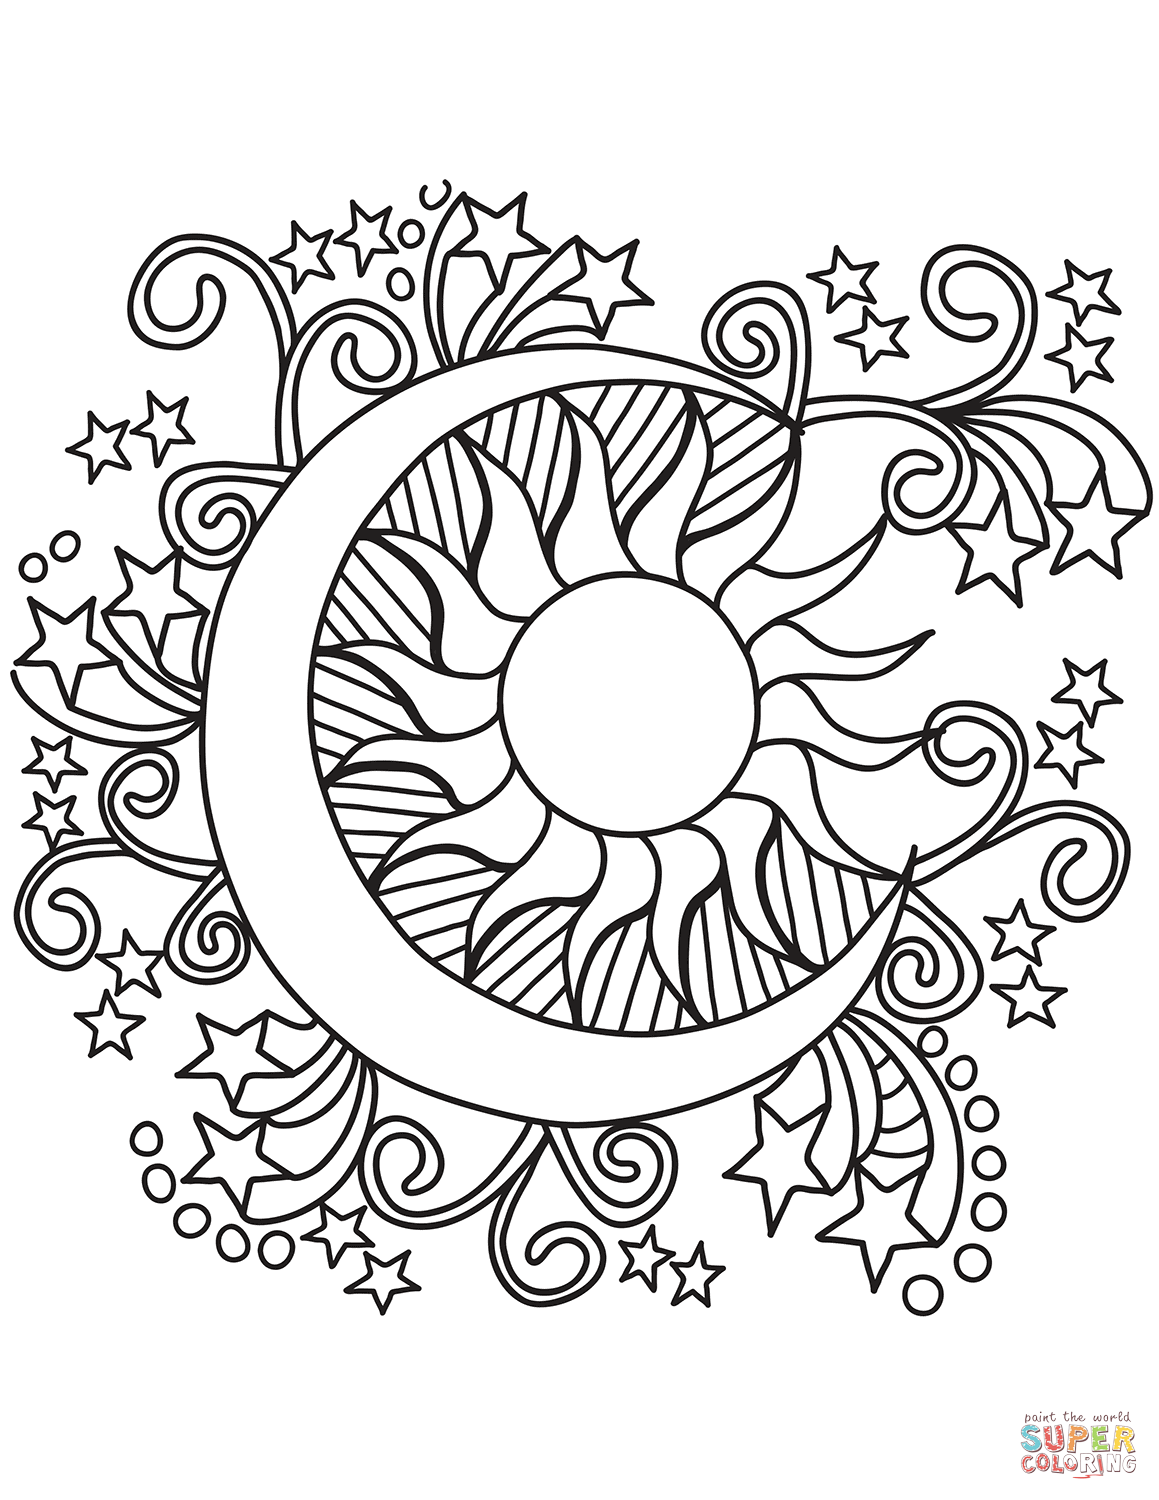 Terrific Pics Coloring Sheets Tips It S Not A Solution That Colouring Textbooks To Get Grown Ups Star Coloring Pages Moon Coloring Pages Mandala Coloring Pages